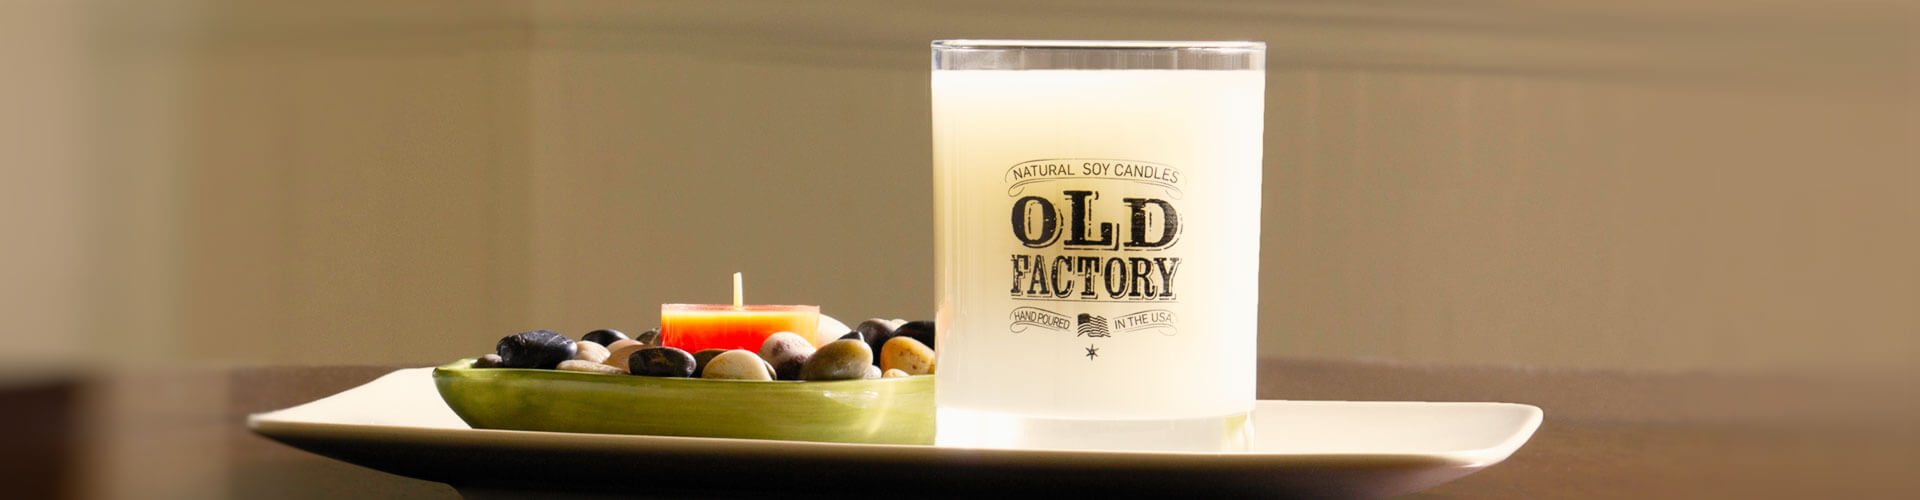 Old Factory Candles - Lusciously Scented Candles Made from